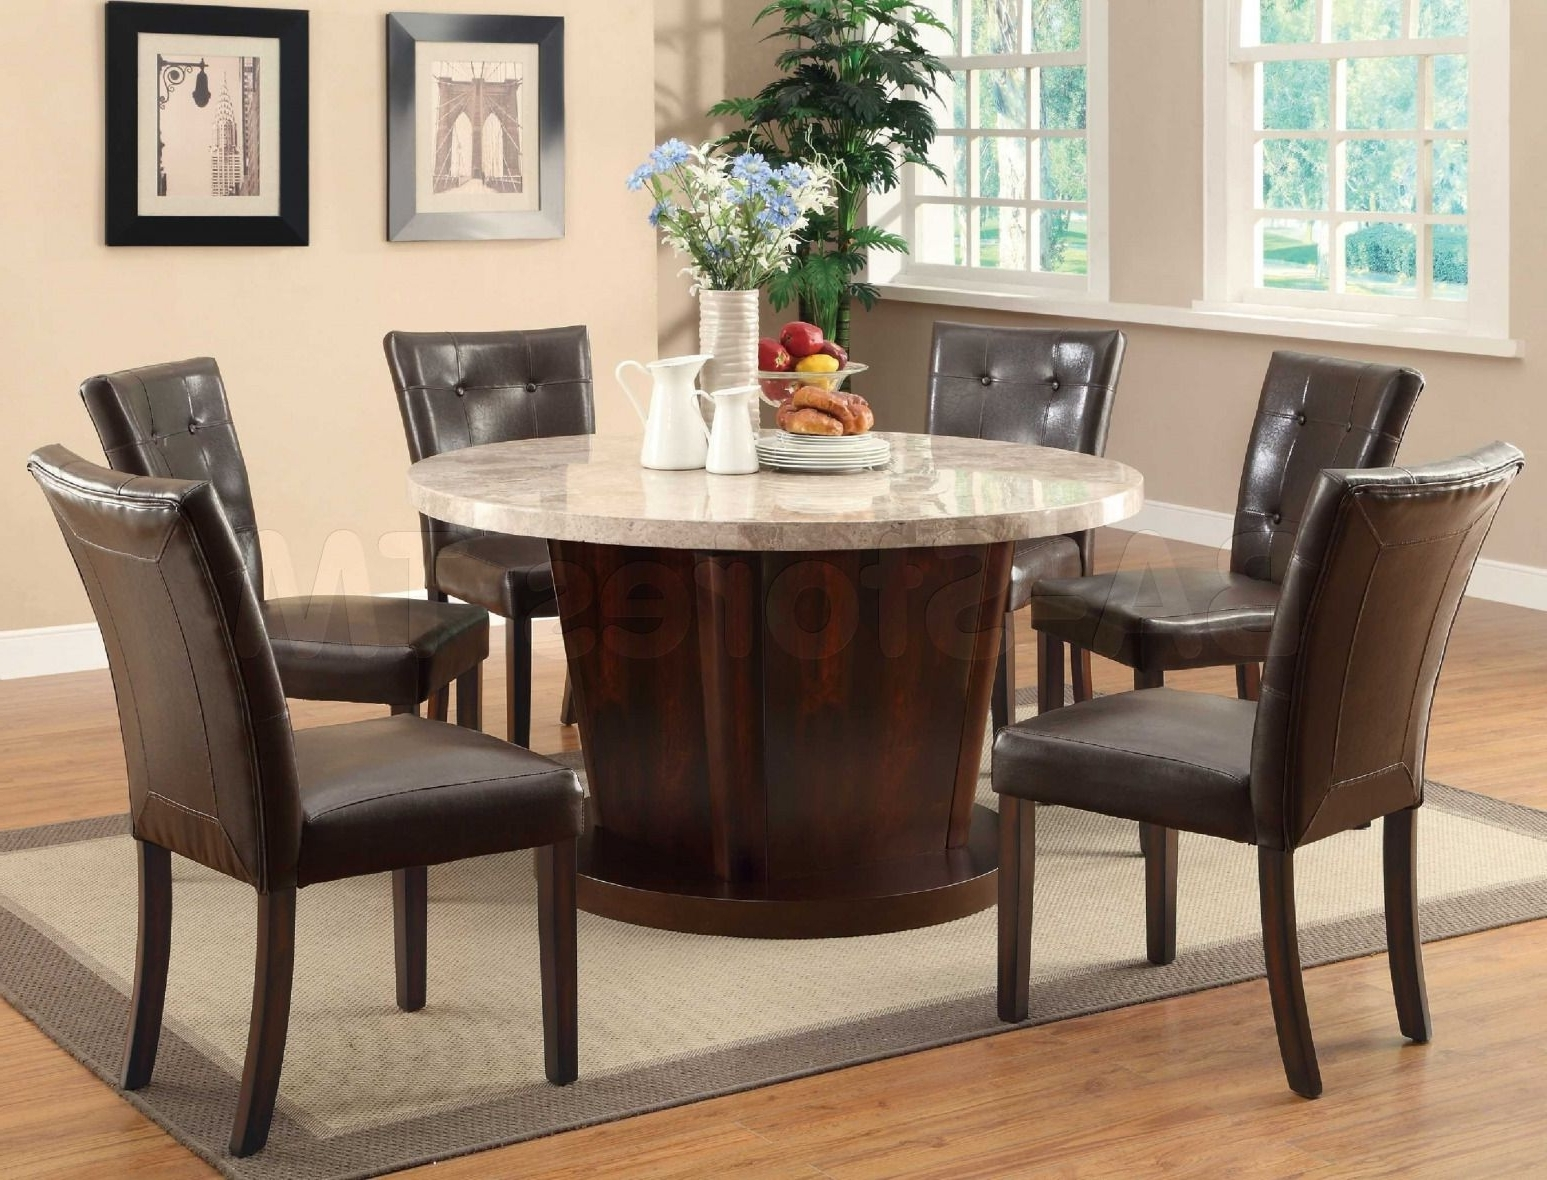 6 Person Round Dining Tables For Recent 100+ Round 6 Person Dining Table – Best Office Furniture Check More (View 13 of 25)